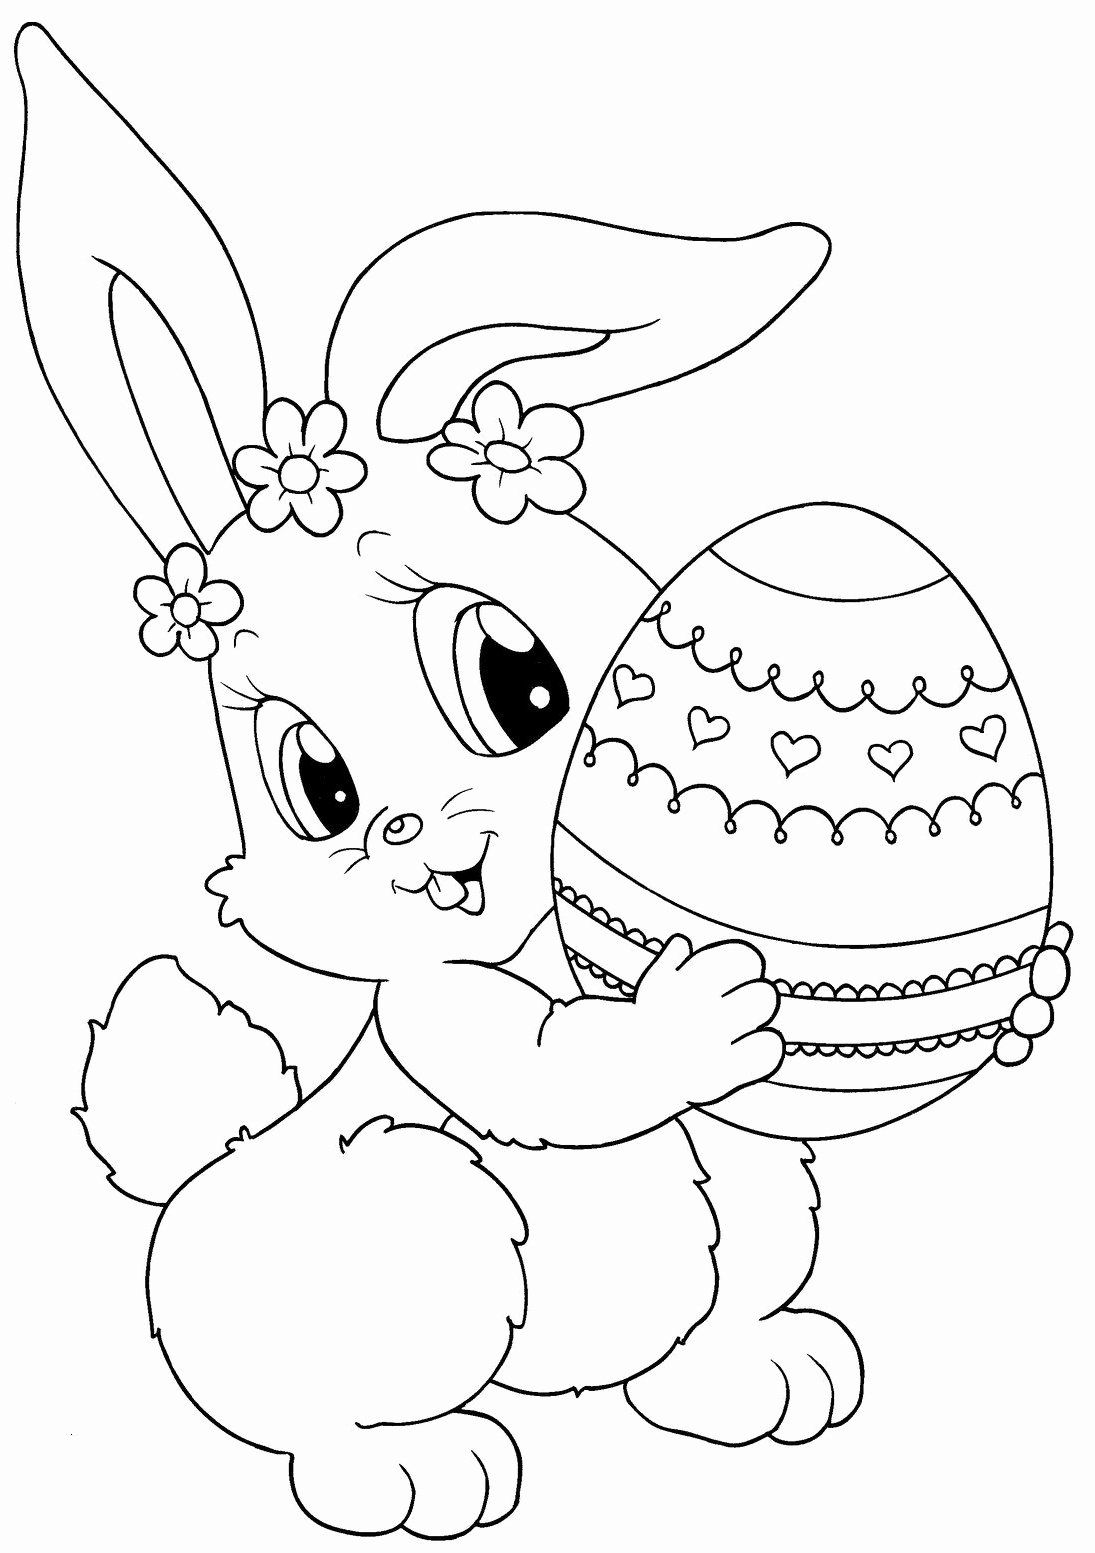 24+ Cute printable easter coloring pages ideas in 2021